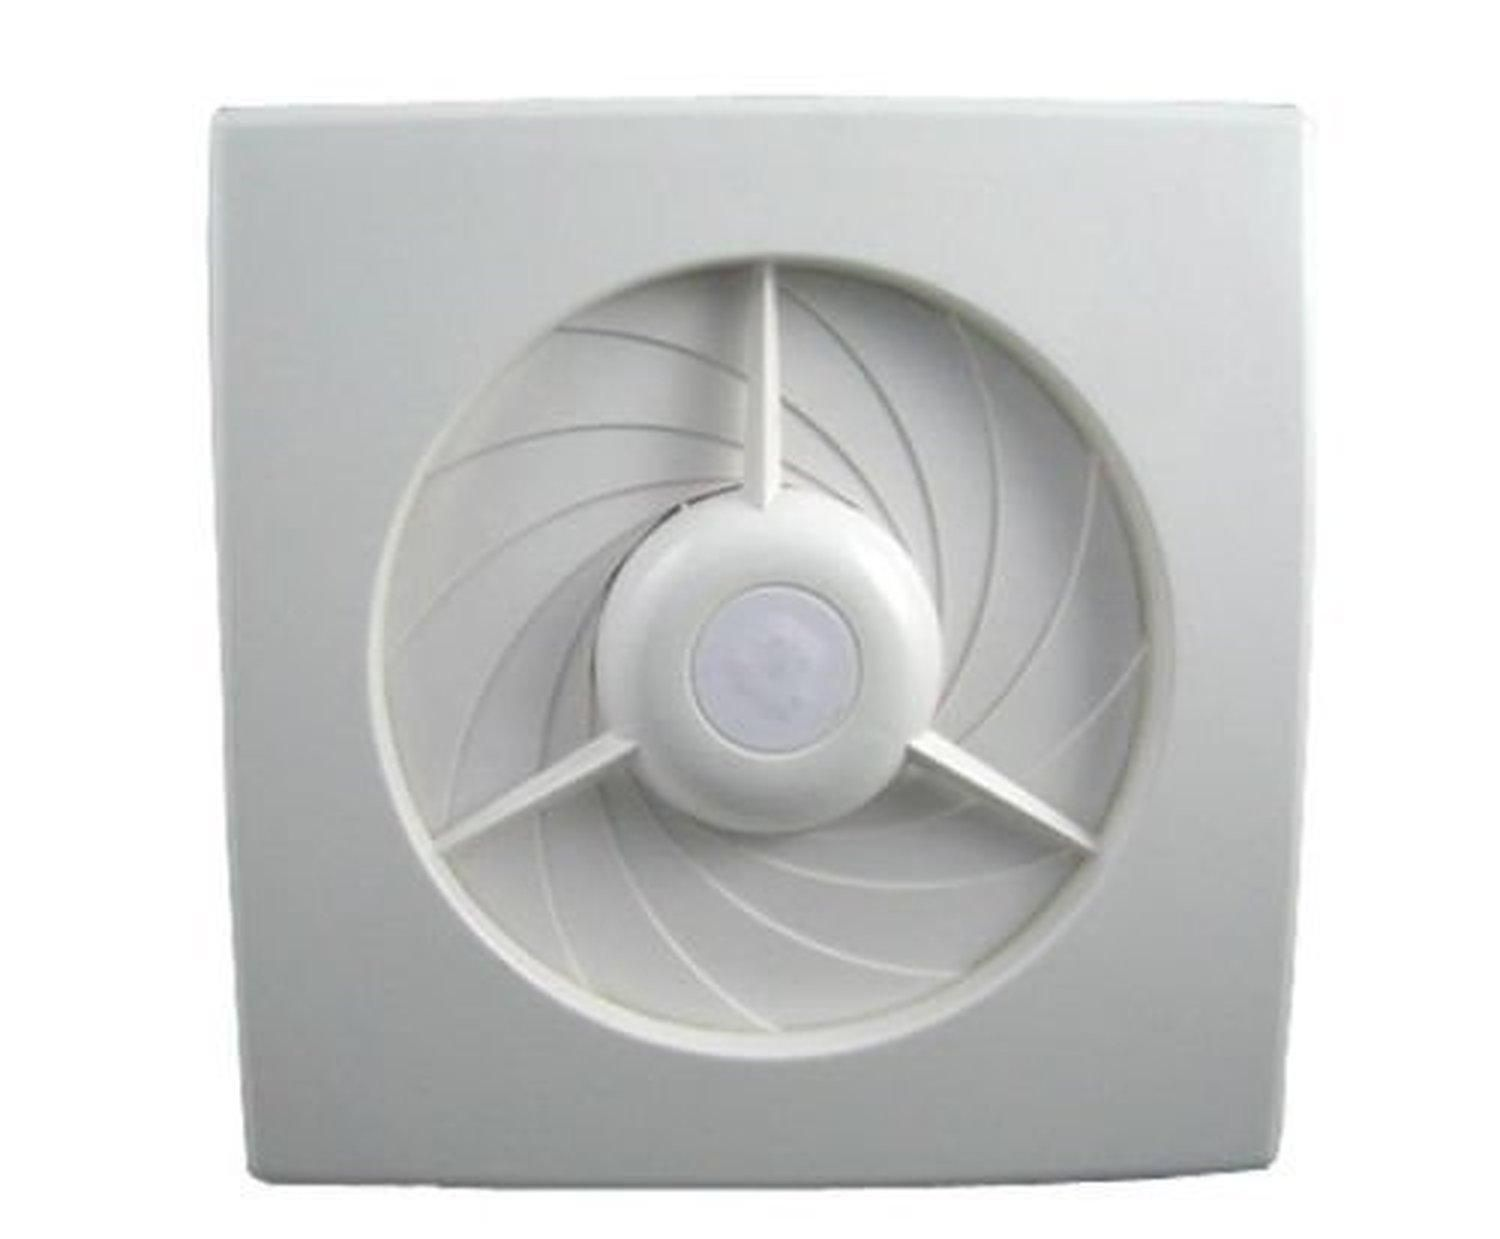 4 6 inch extractor exhaust fan window wall kitchen for 2 bathroom exhaust fan venting